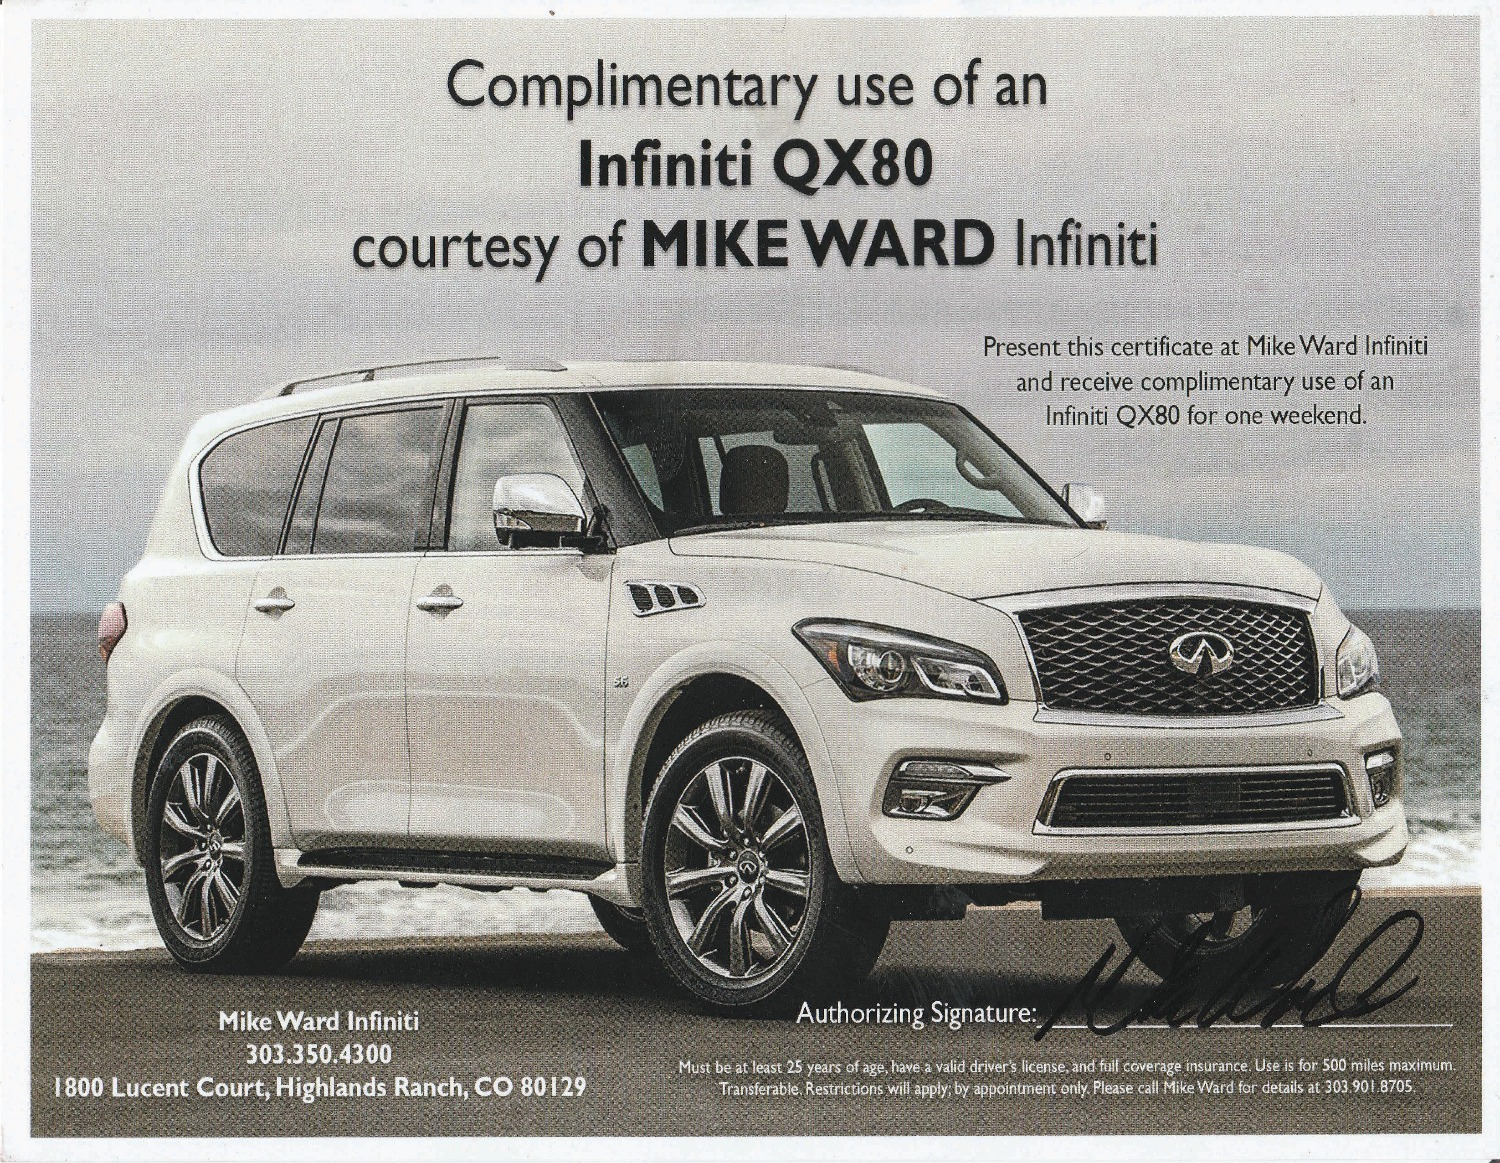 Weekend Rental of Infiniti QX80